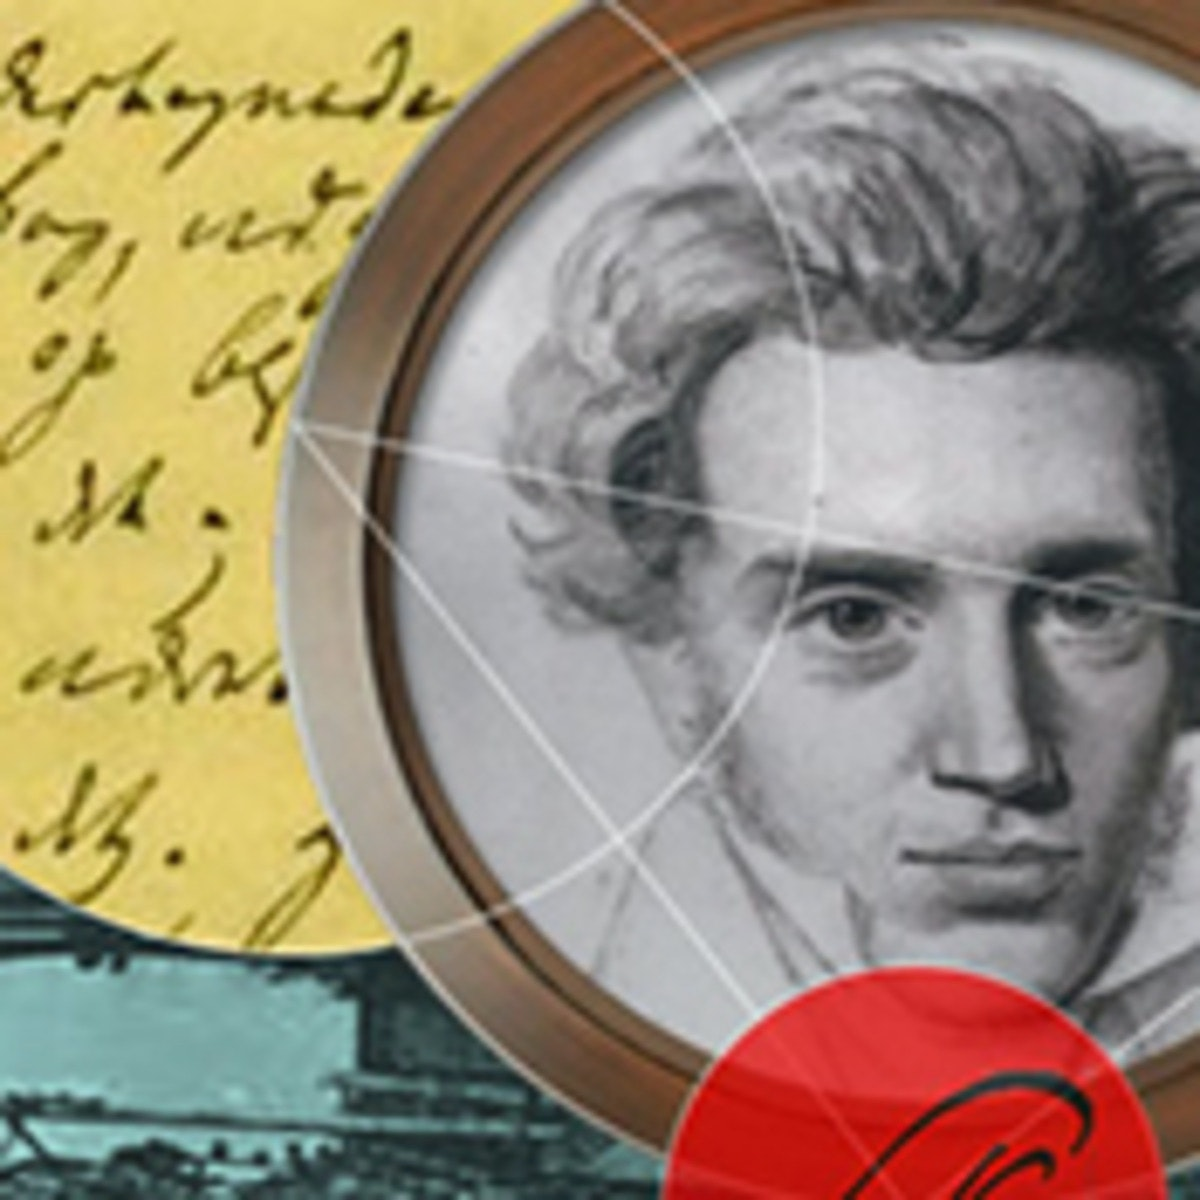 S0ren Kierkegaard - Subjectivity, Irony and the Crisis of Modernity